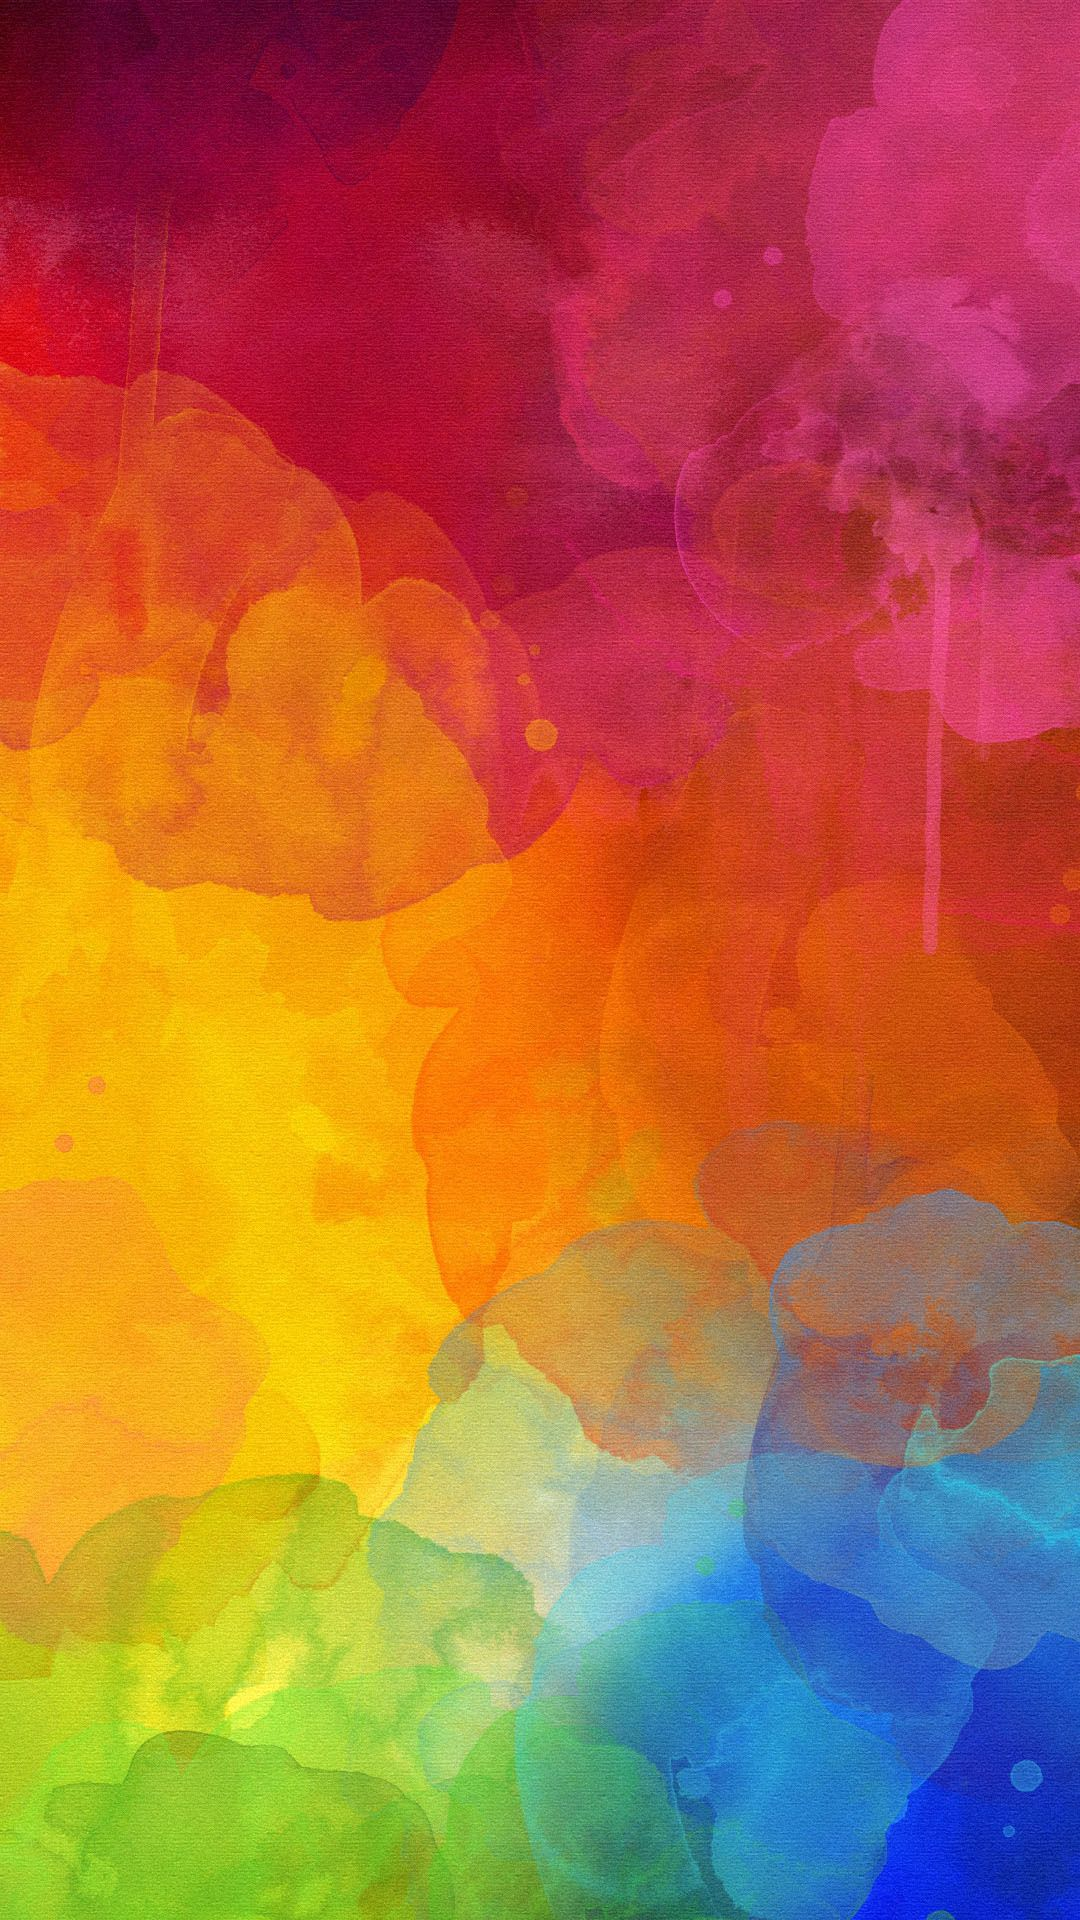 Colourful Watercolour Mark Color Of Rainbow In Abstract Wallpaper